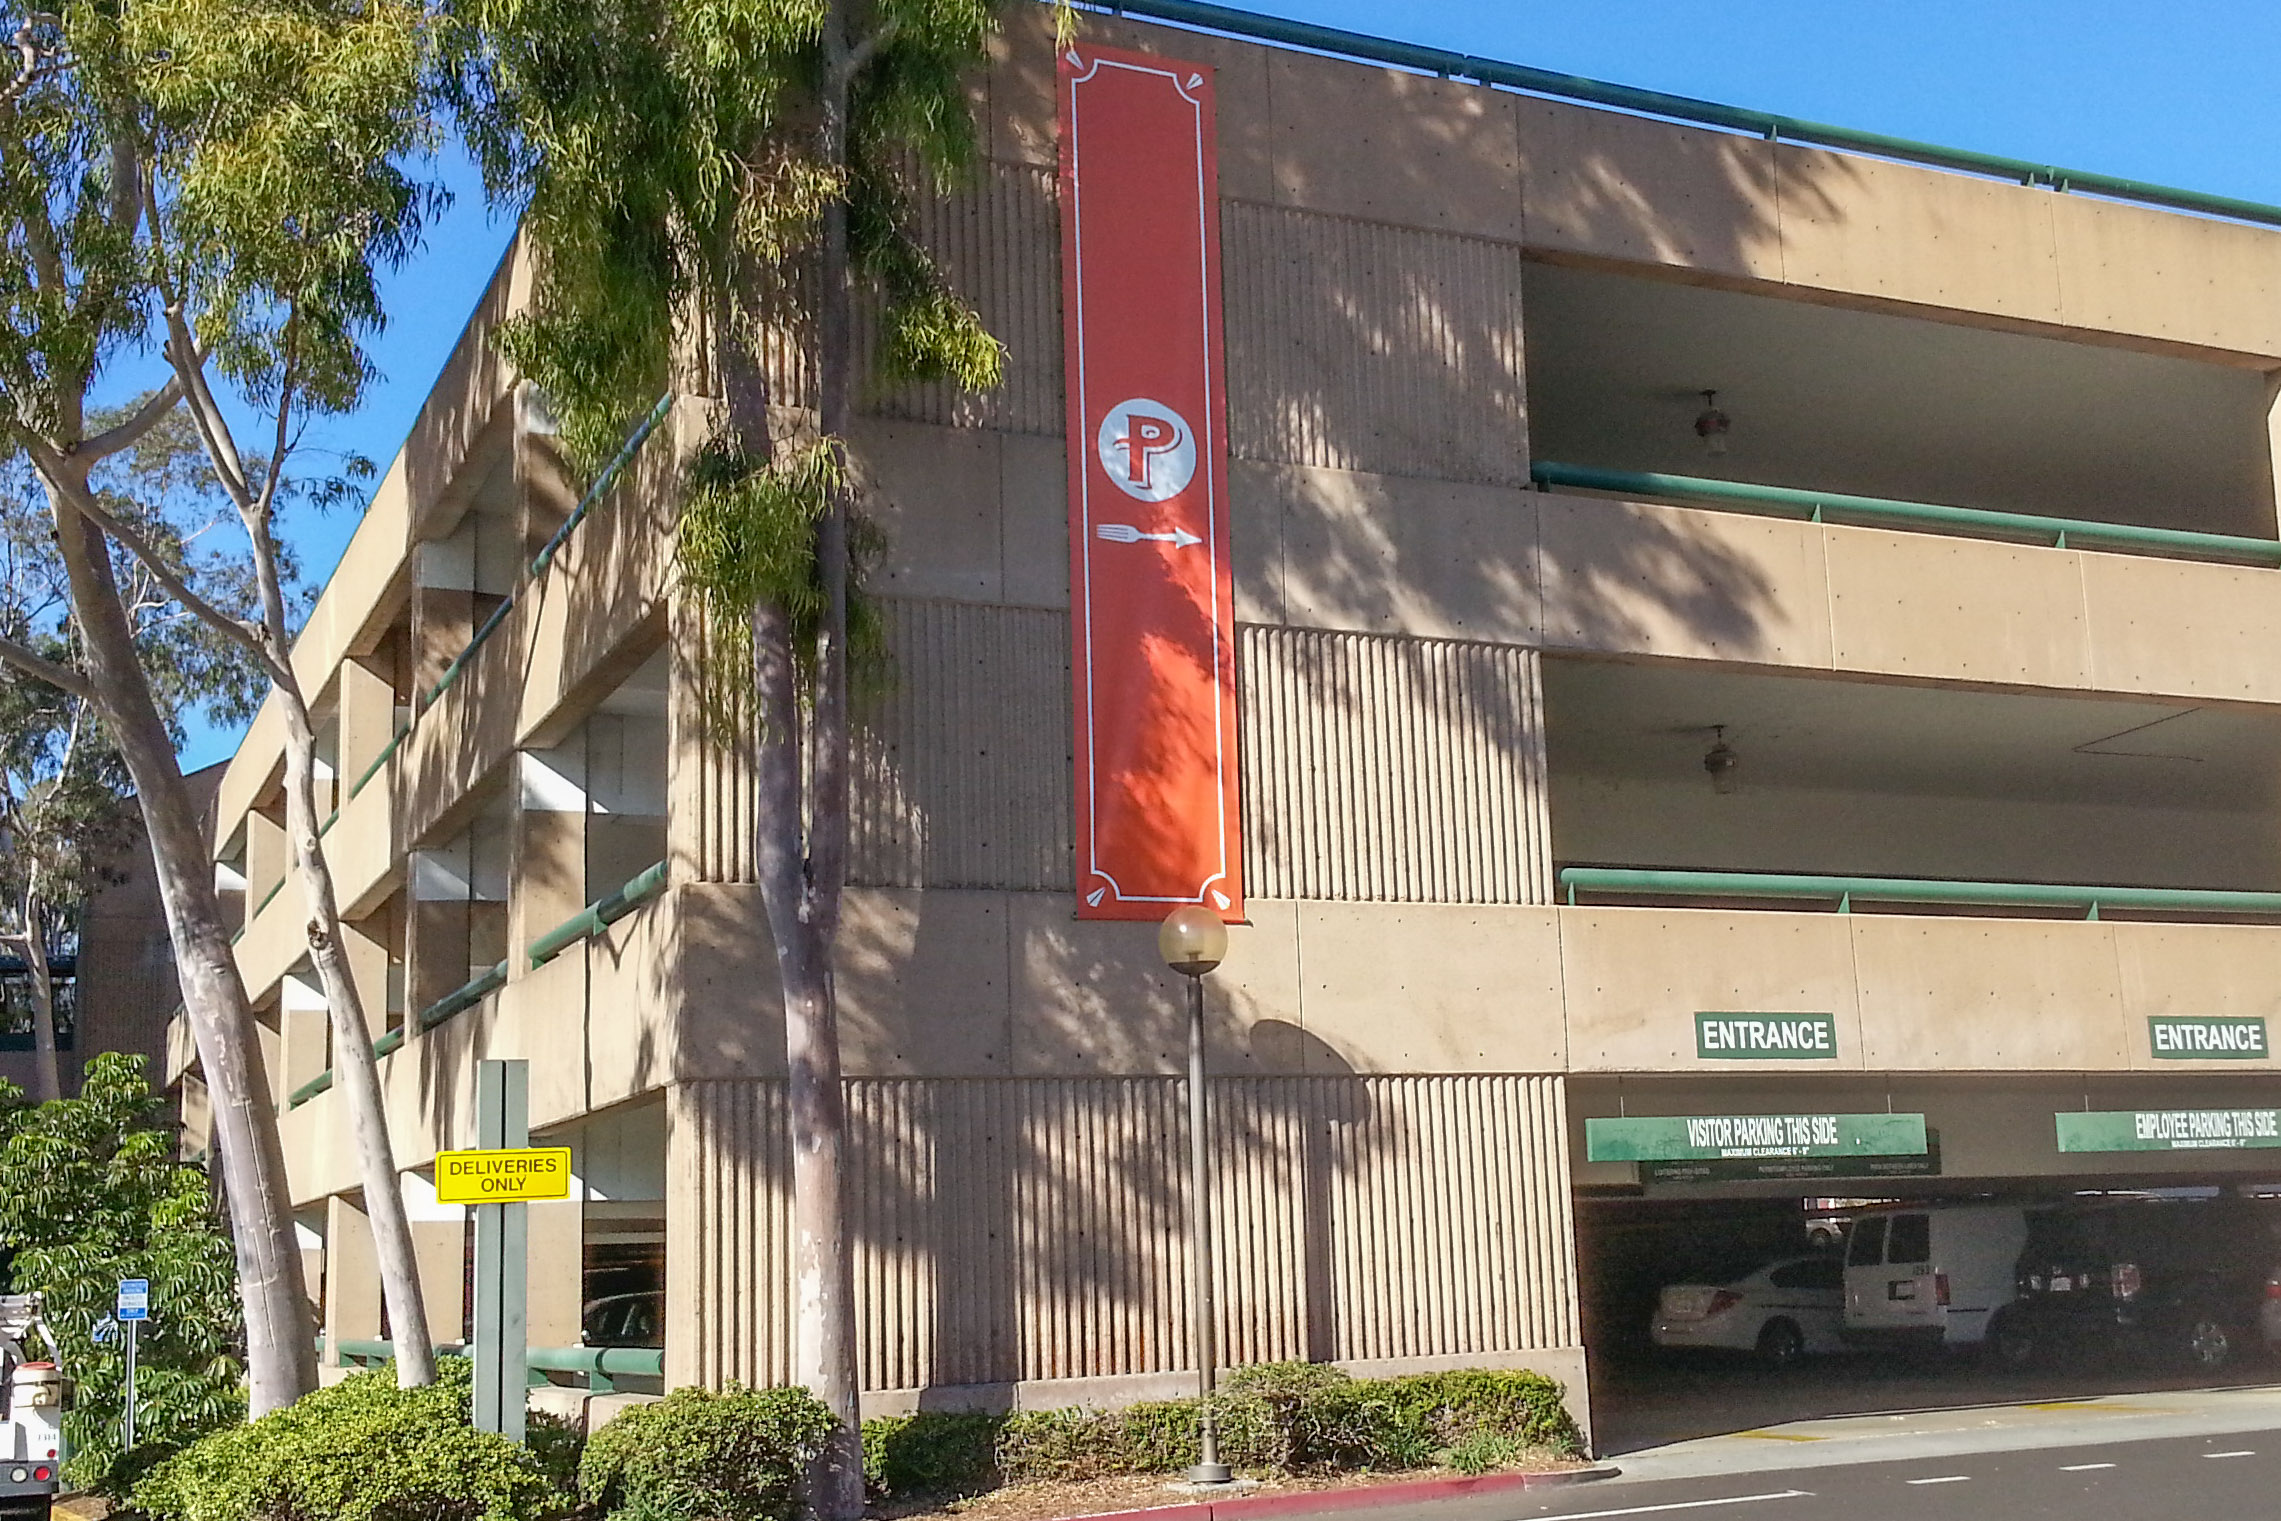 Vinyl banner being used as a parking directional sign - Anaheim Packing District